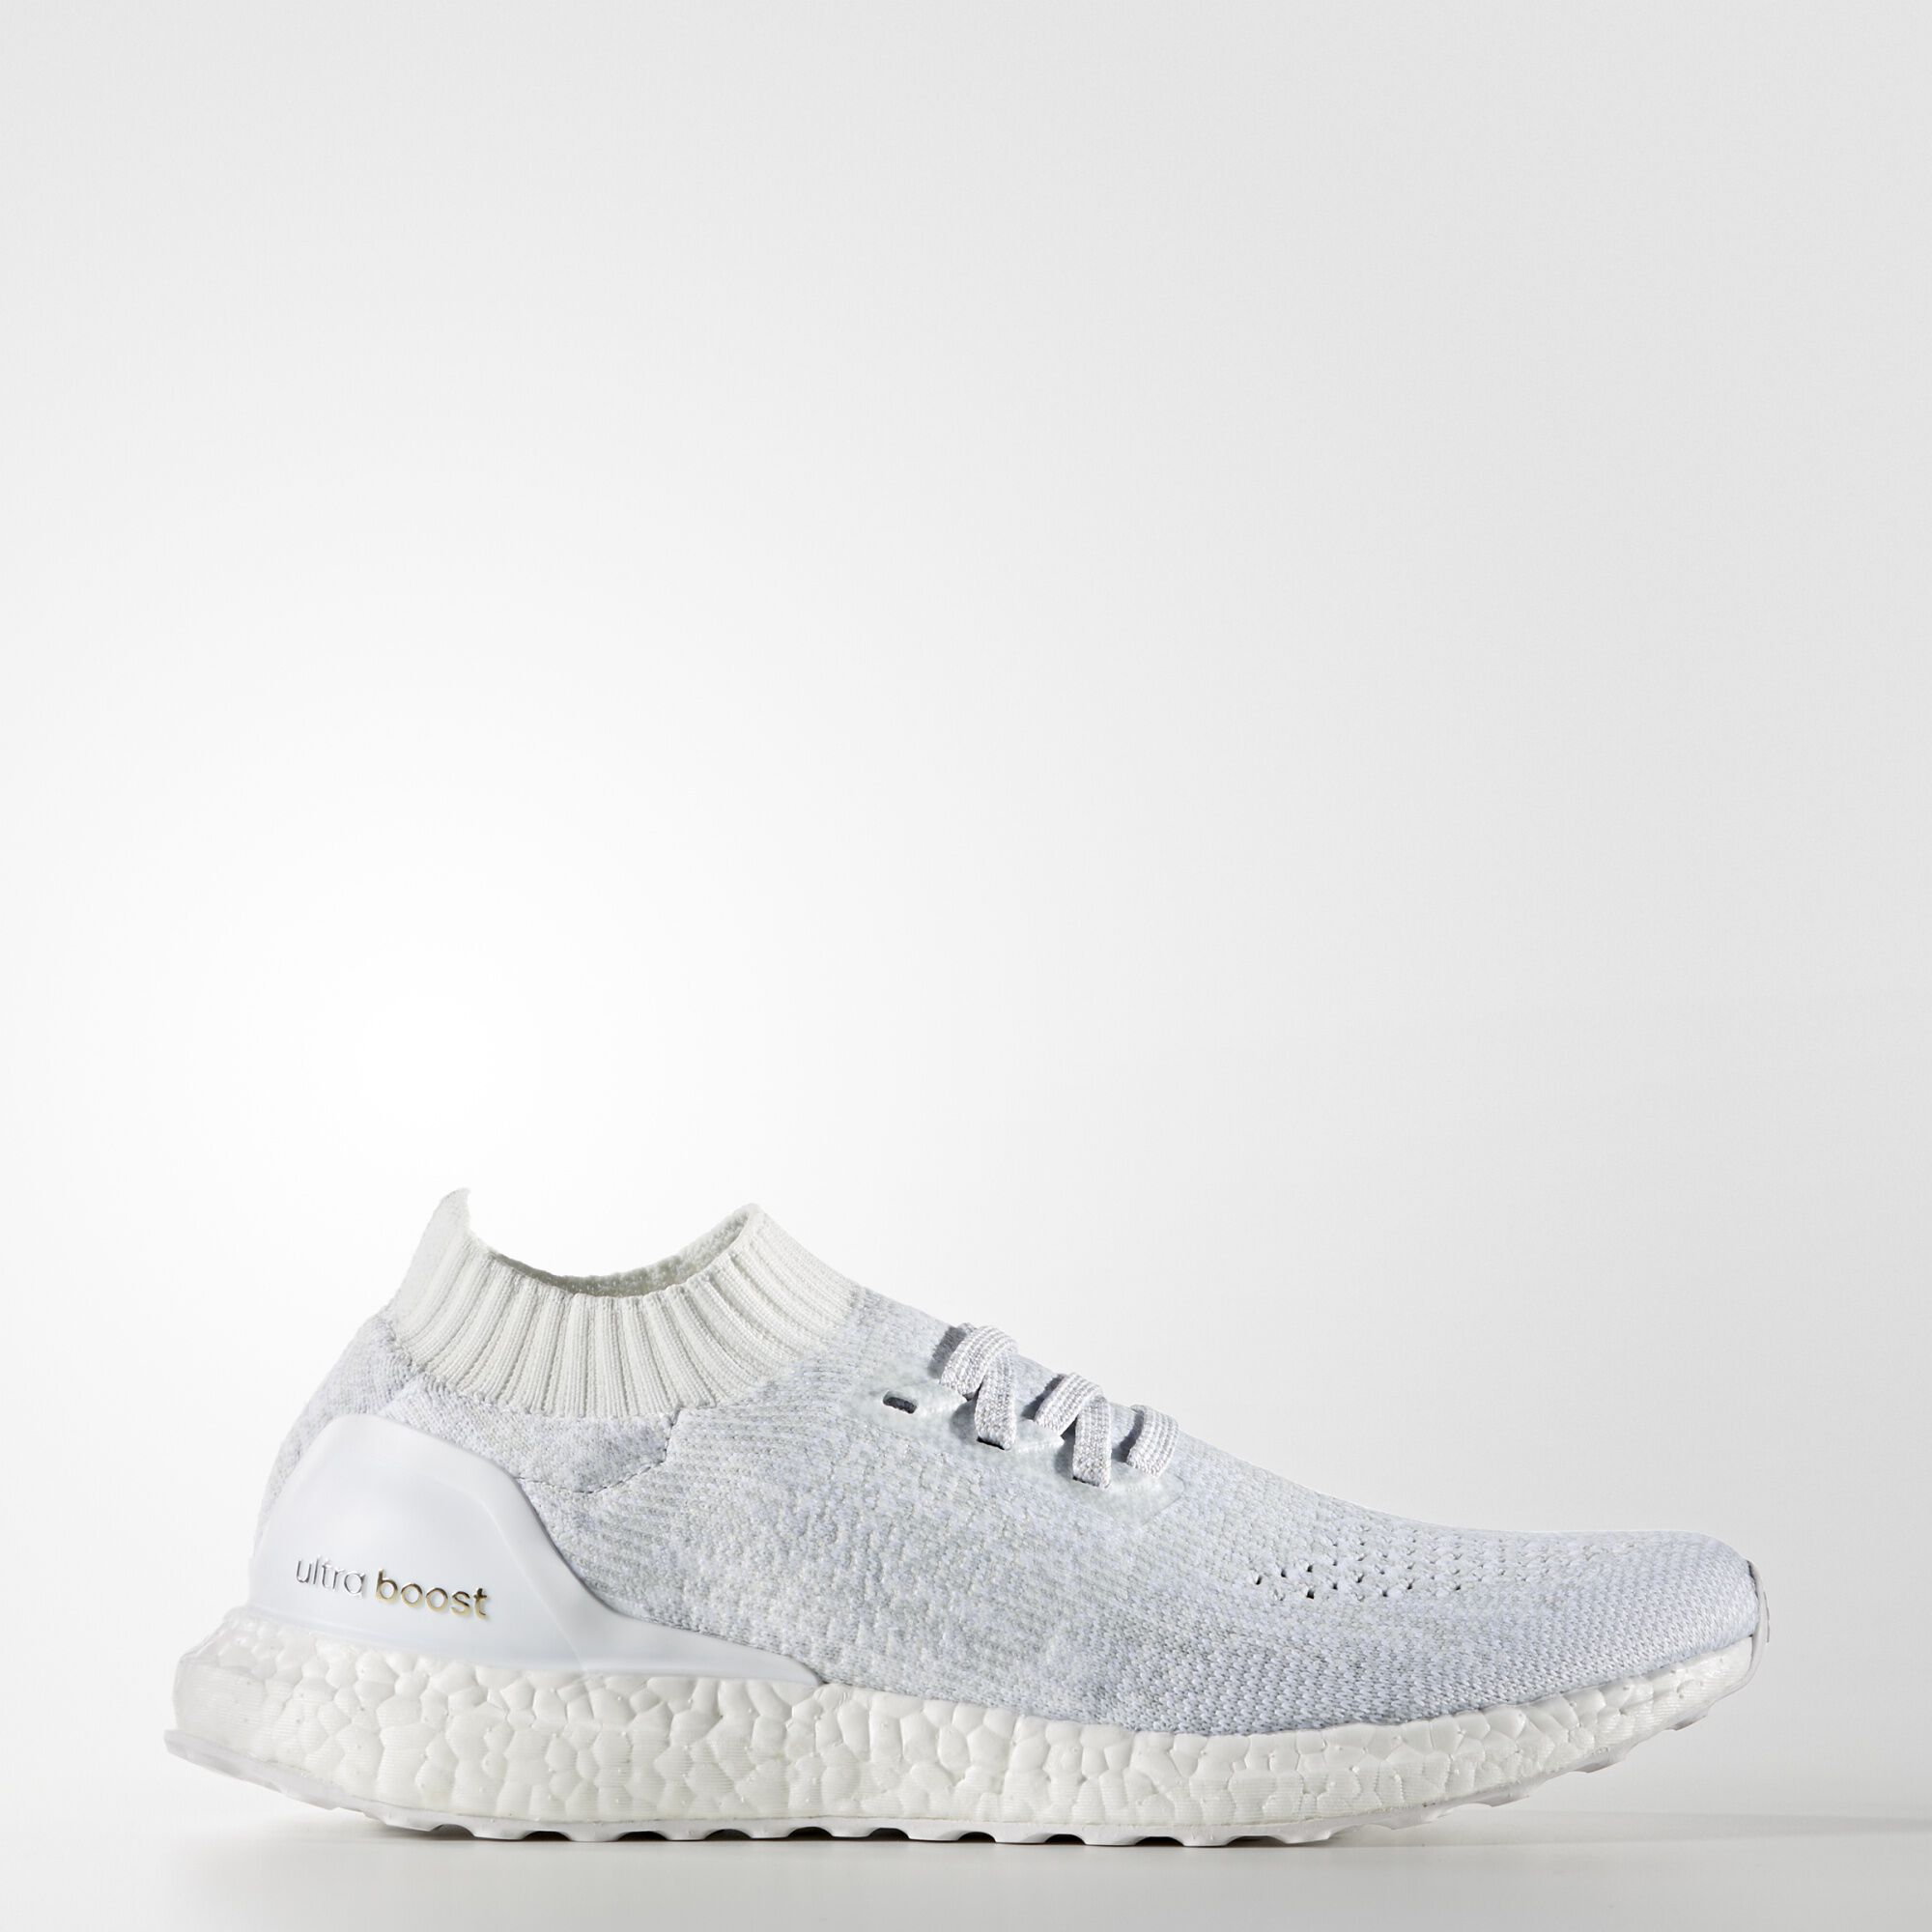 749faa2d3 Adidas Ultra Boost Uncaged Ltd White wallbank-lfc.co.uk